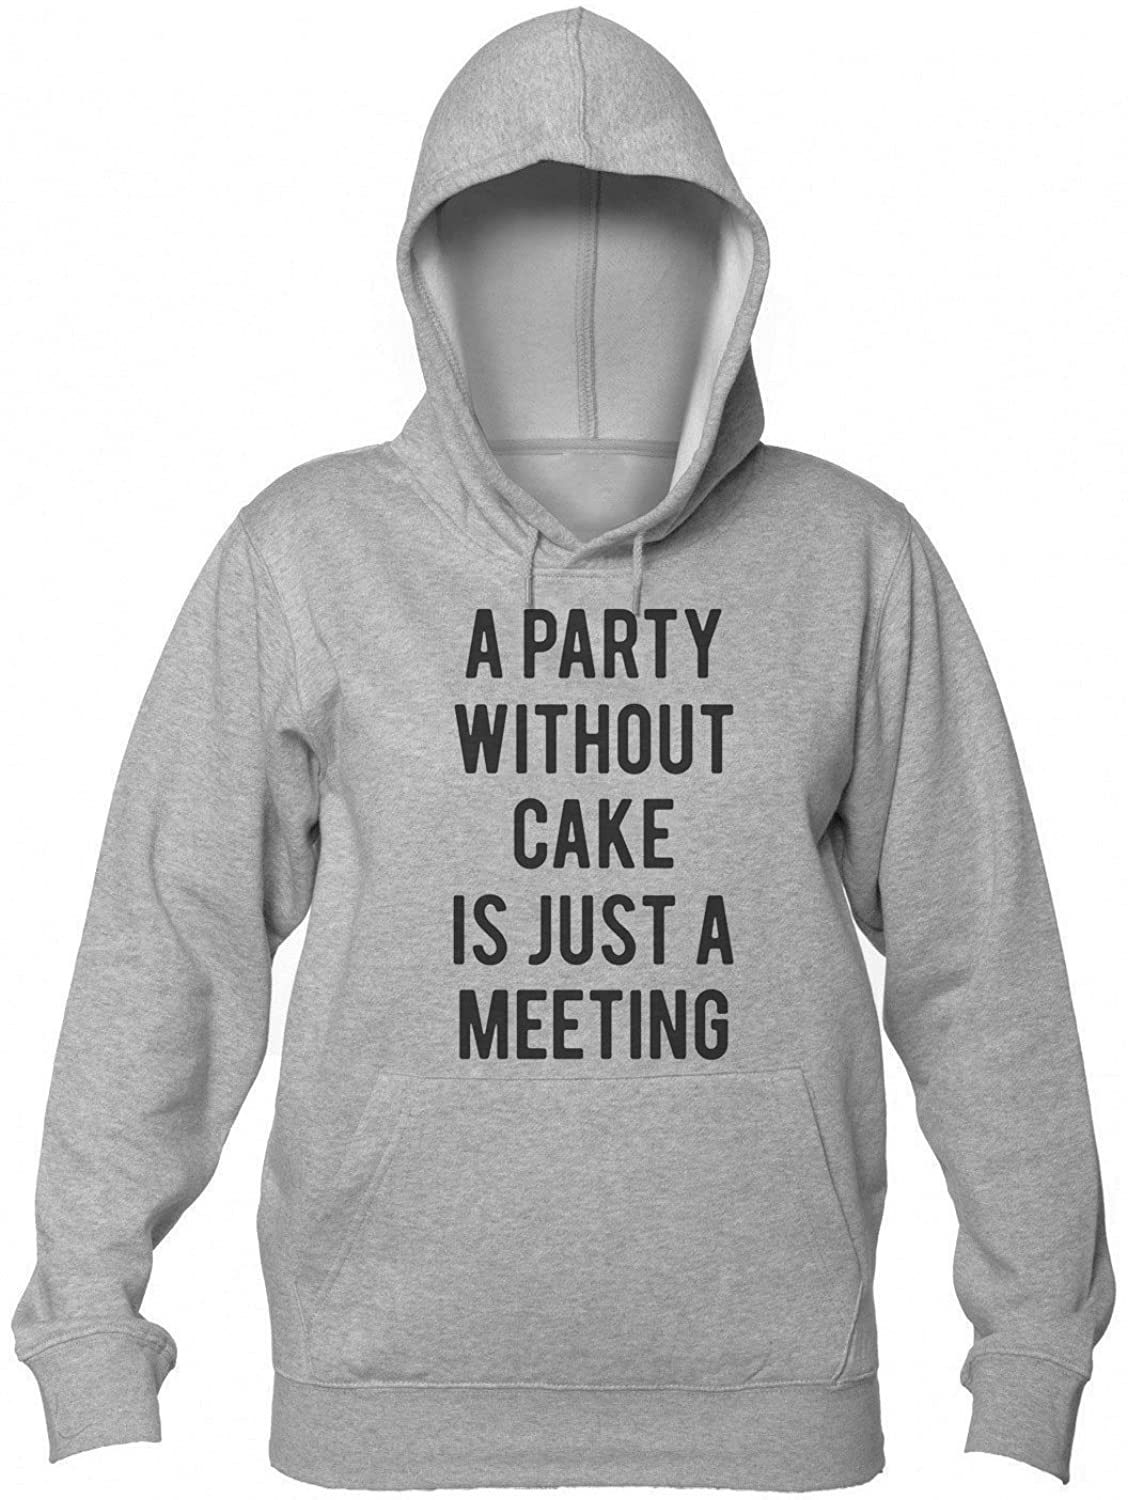 A Party Without Cake Is Just A Meeting Women's Hooded Sweatshirt Small